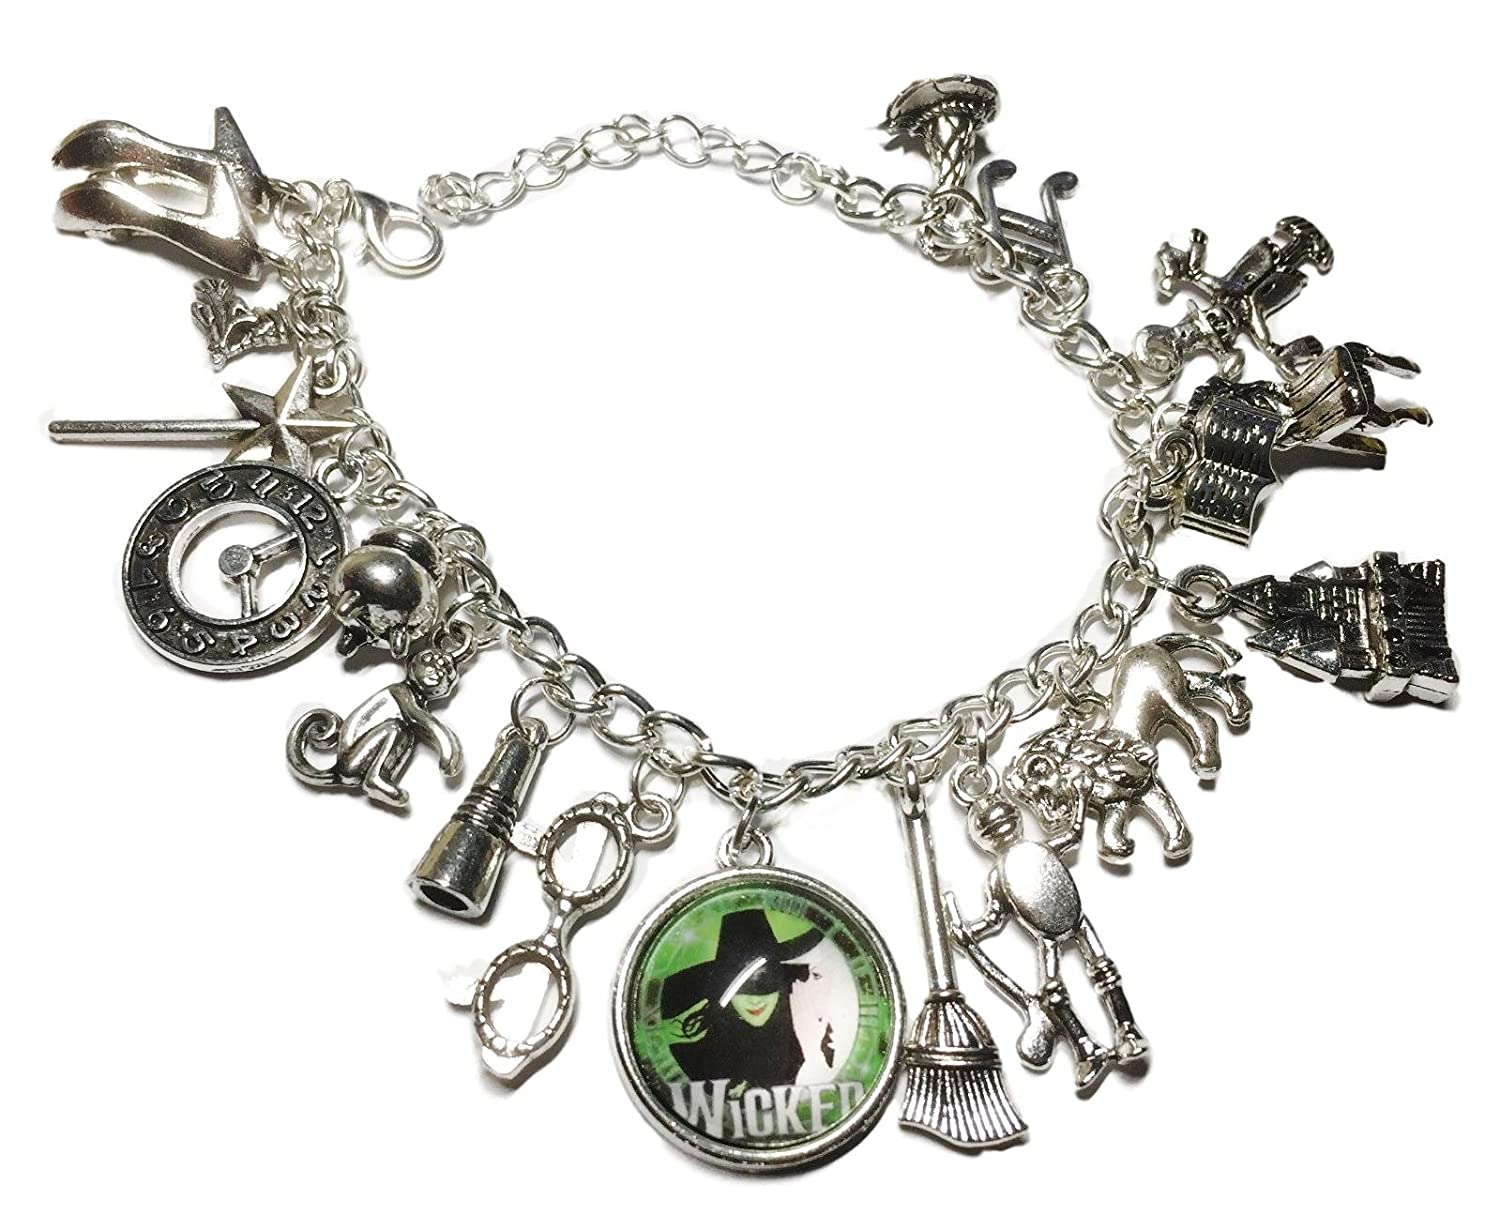 Main Street 24//7 Wicked Musical Themed Silvertone Metal and Glass Dome Charms Bracelet